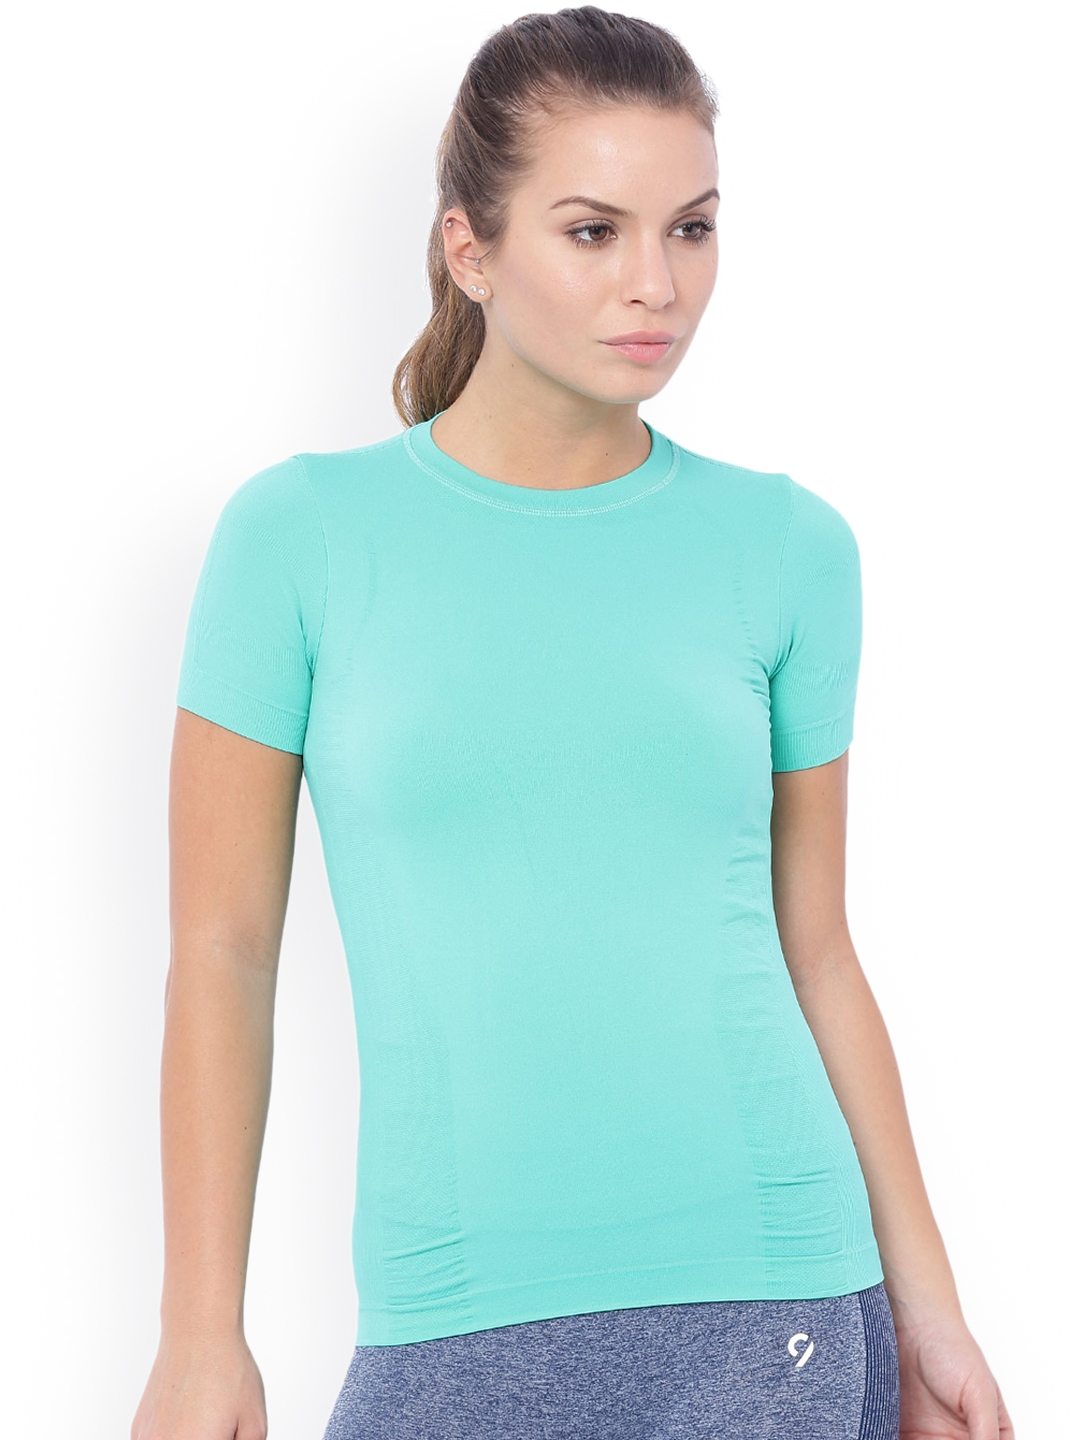 af3584e982d9 Buy C9 Women Sea Green Solid Round Neck T Shirt - Tshirts for Women ...